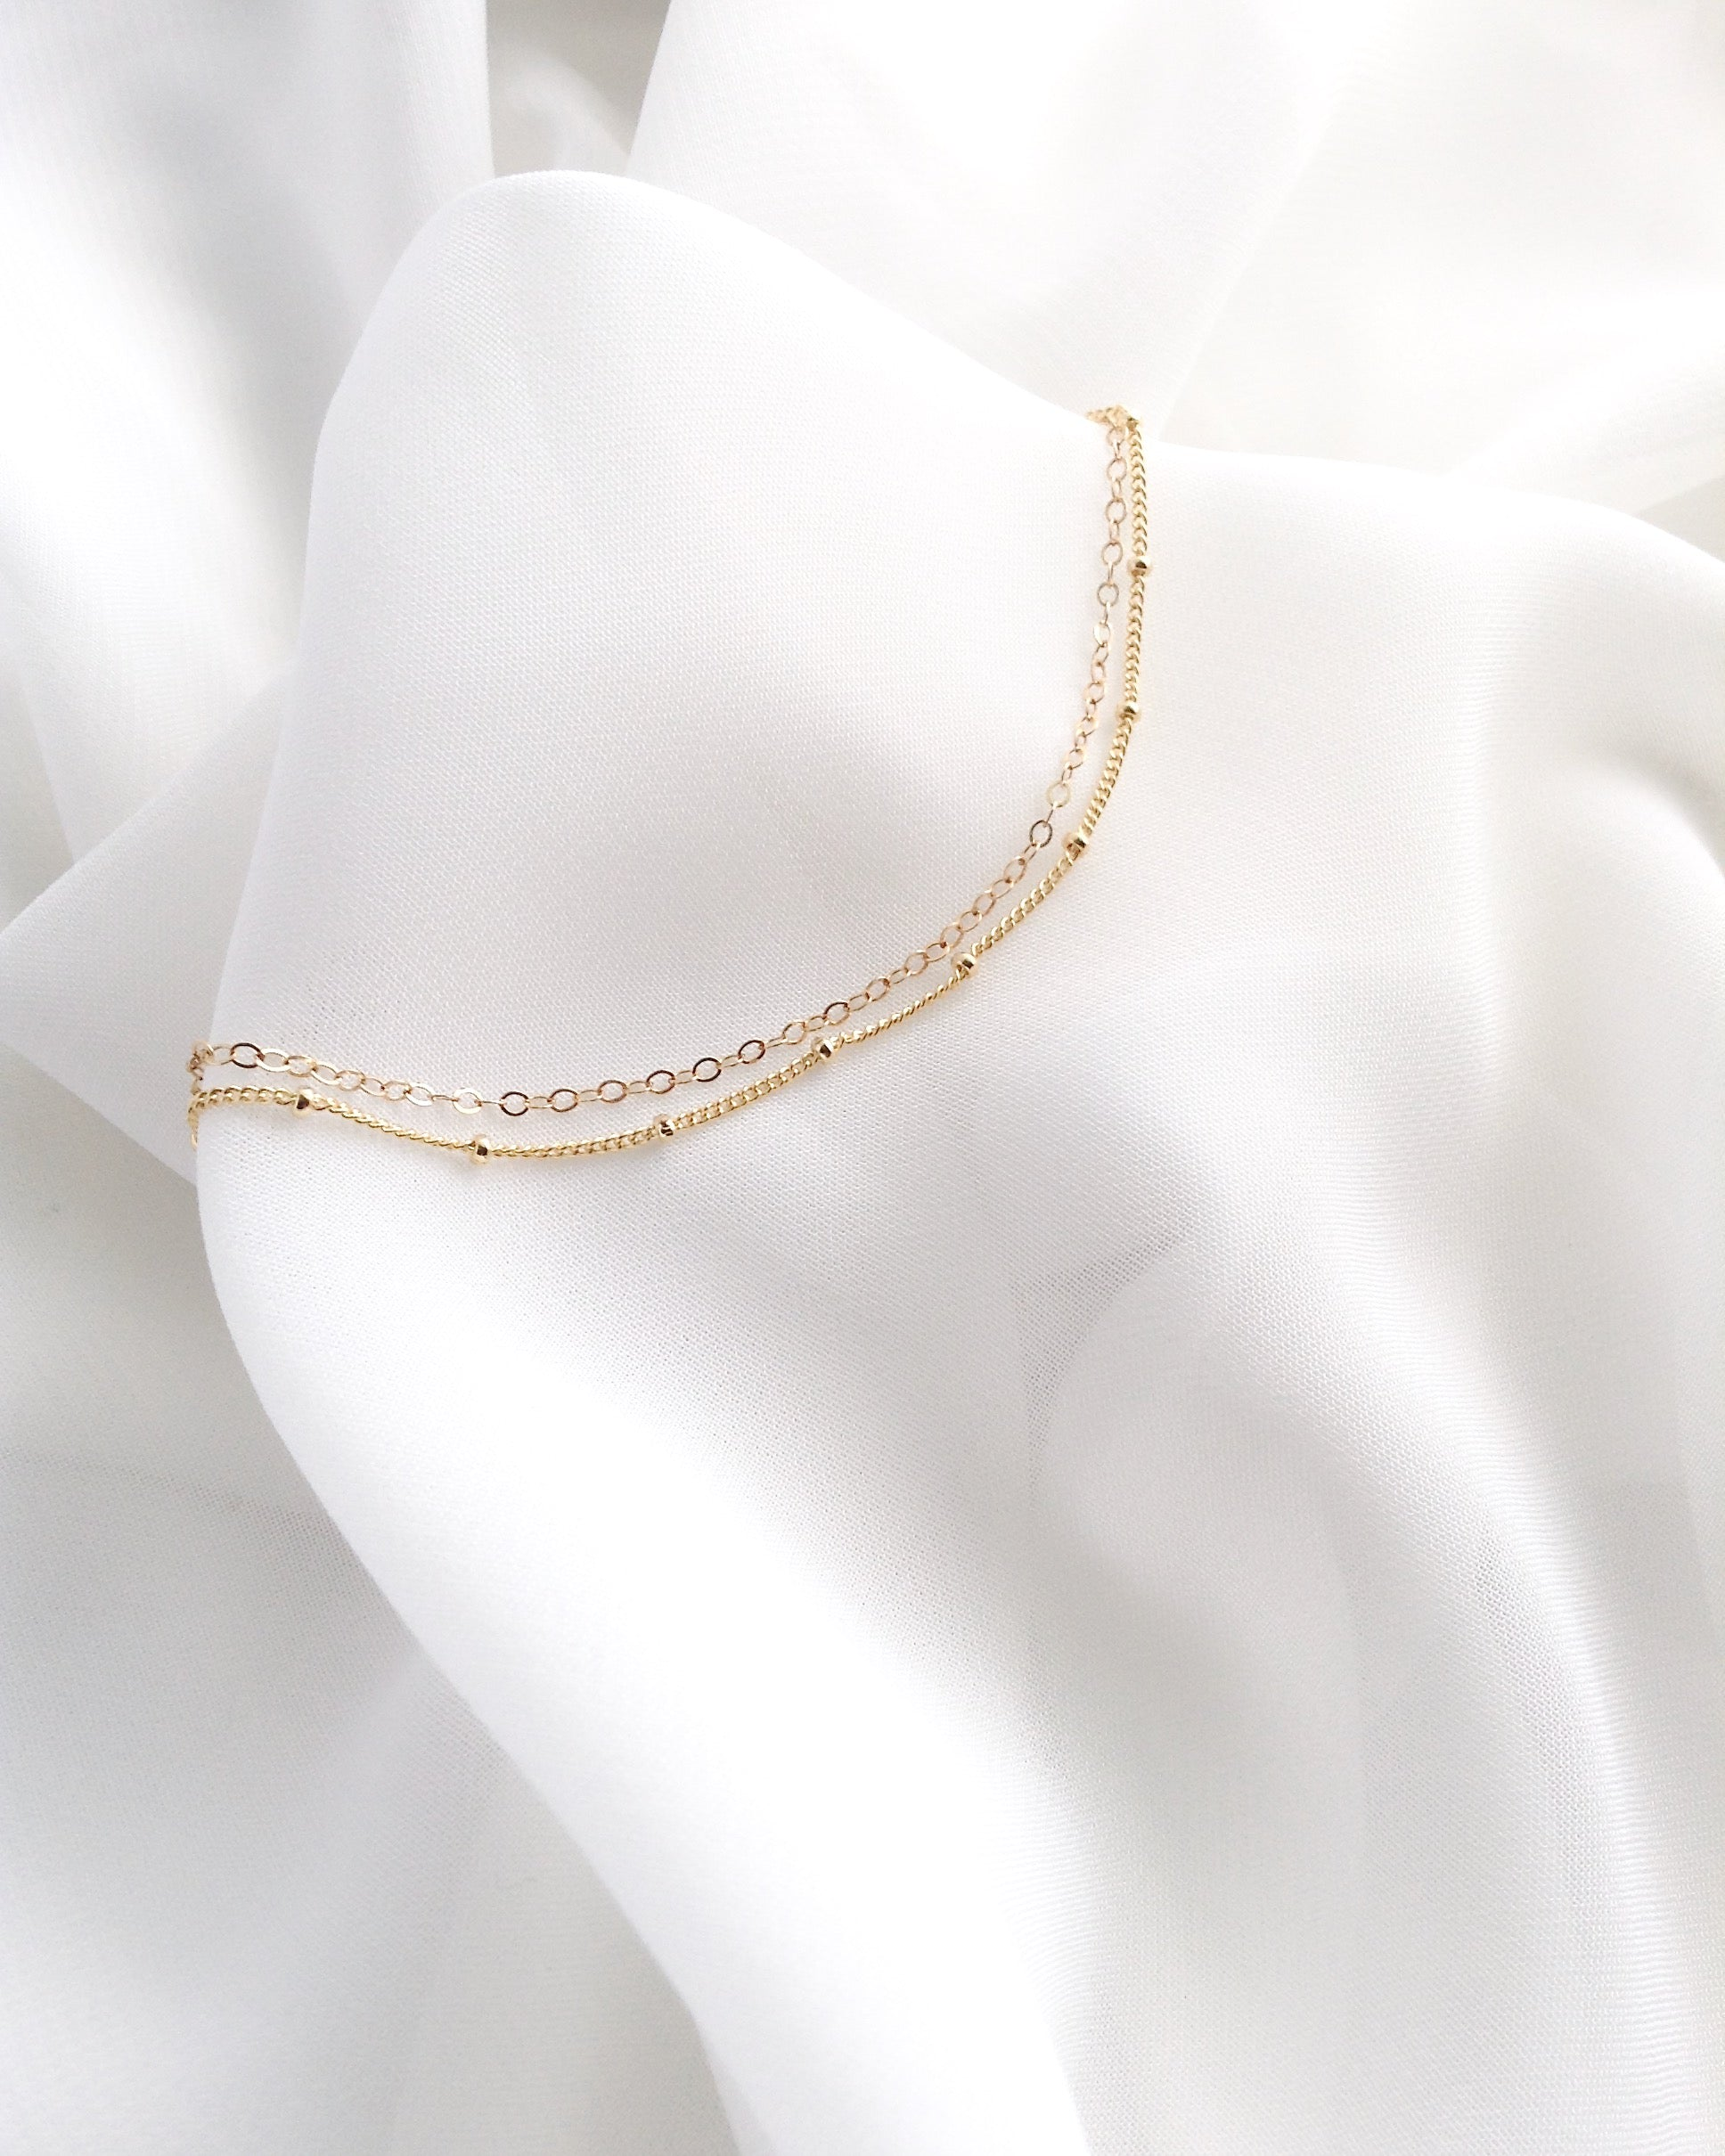 Minimal Anklet | Double Strand Ankle Bracelet in Gold Filled or Sterling Silver | IB Jewelry